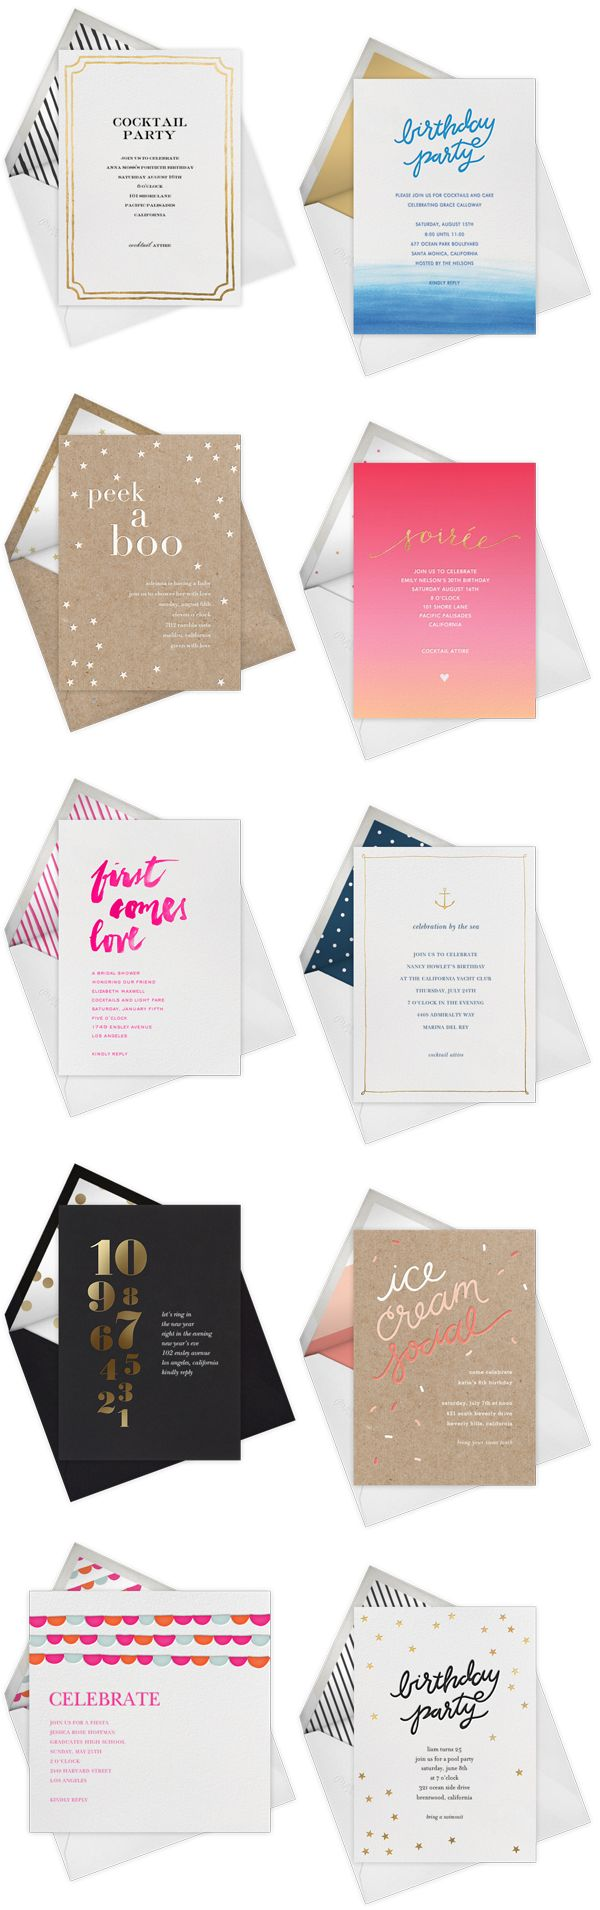 Gold Foil Cards and #Party Invitations by Sugar Paper for Paperless Post: http://ohsobeautifulpaper.com/2014/09/quick-pick-sugar-paper-paperless-post/